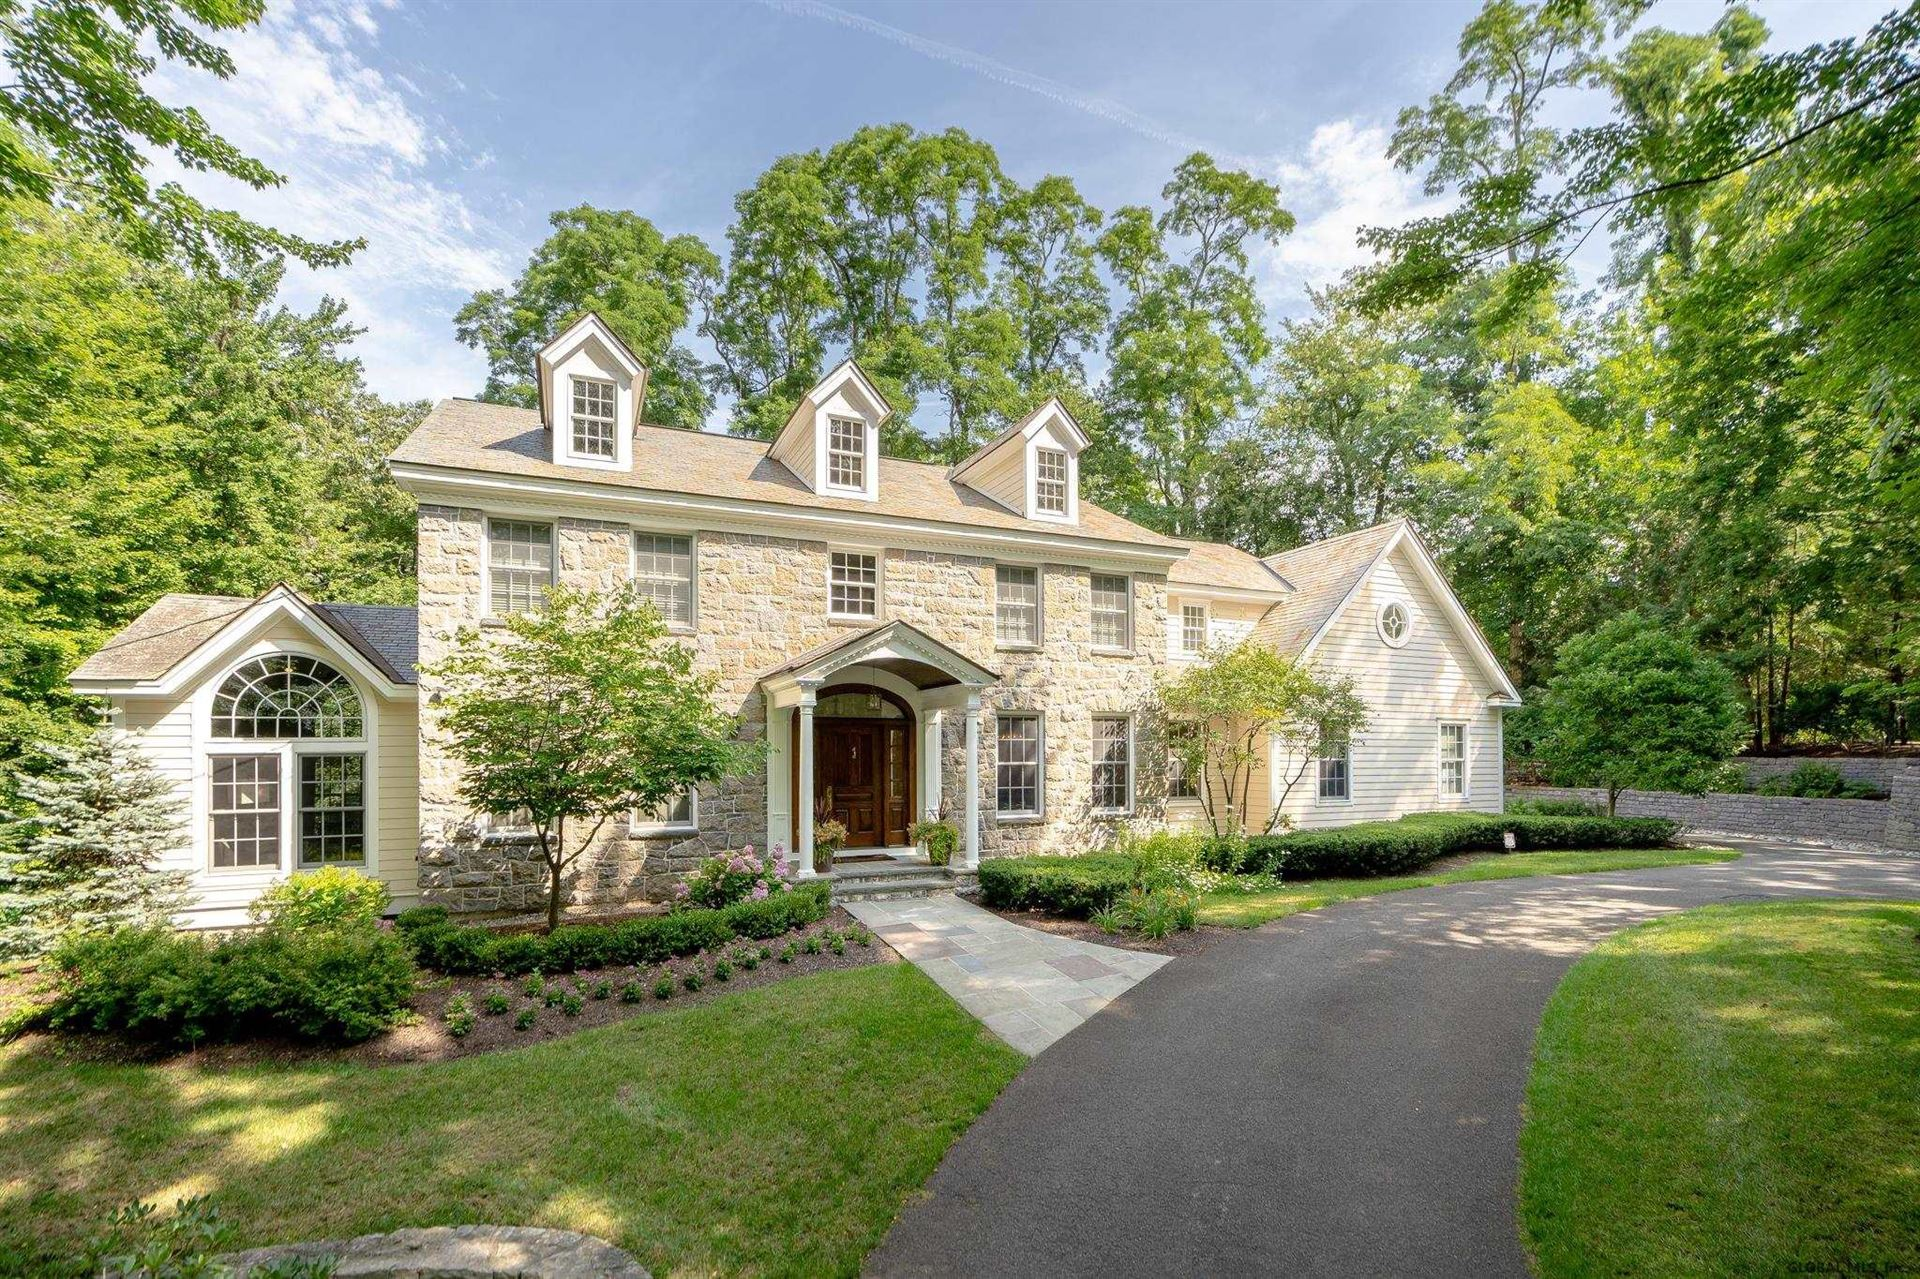 37 HILLS RD, Colonie, NY 12211-1320 - #: 202124167